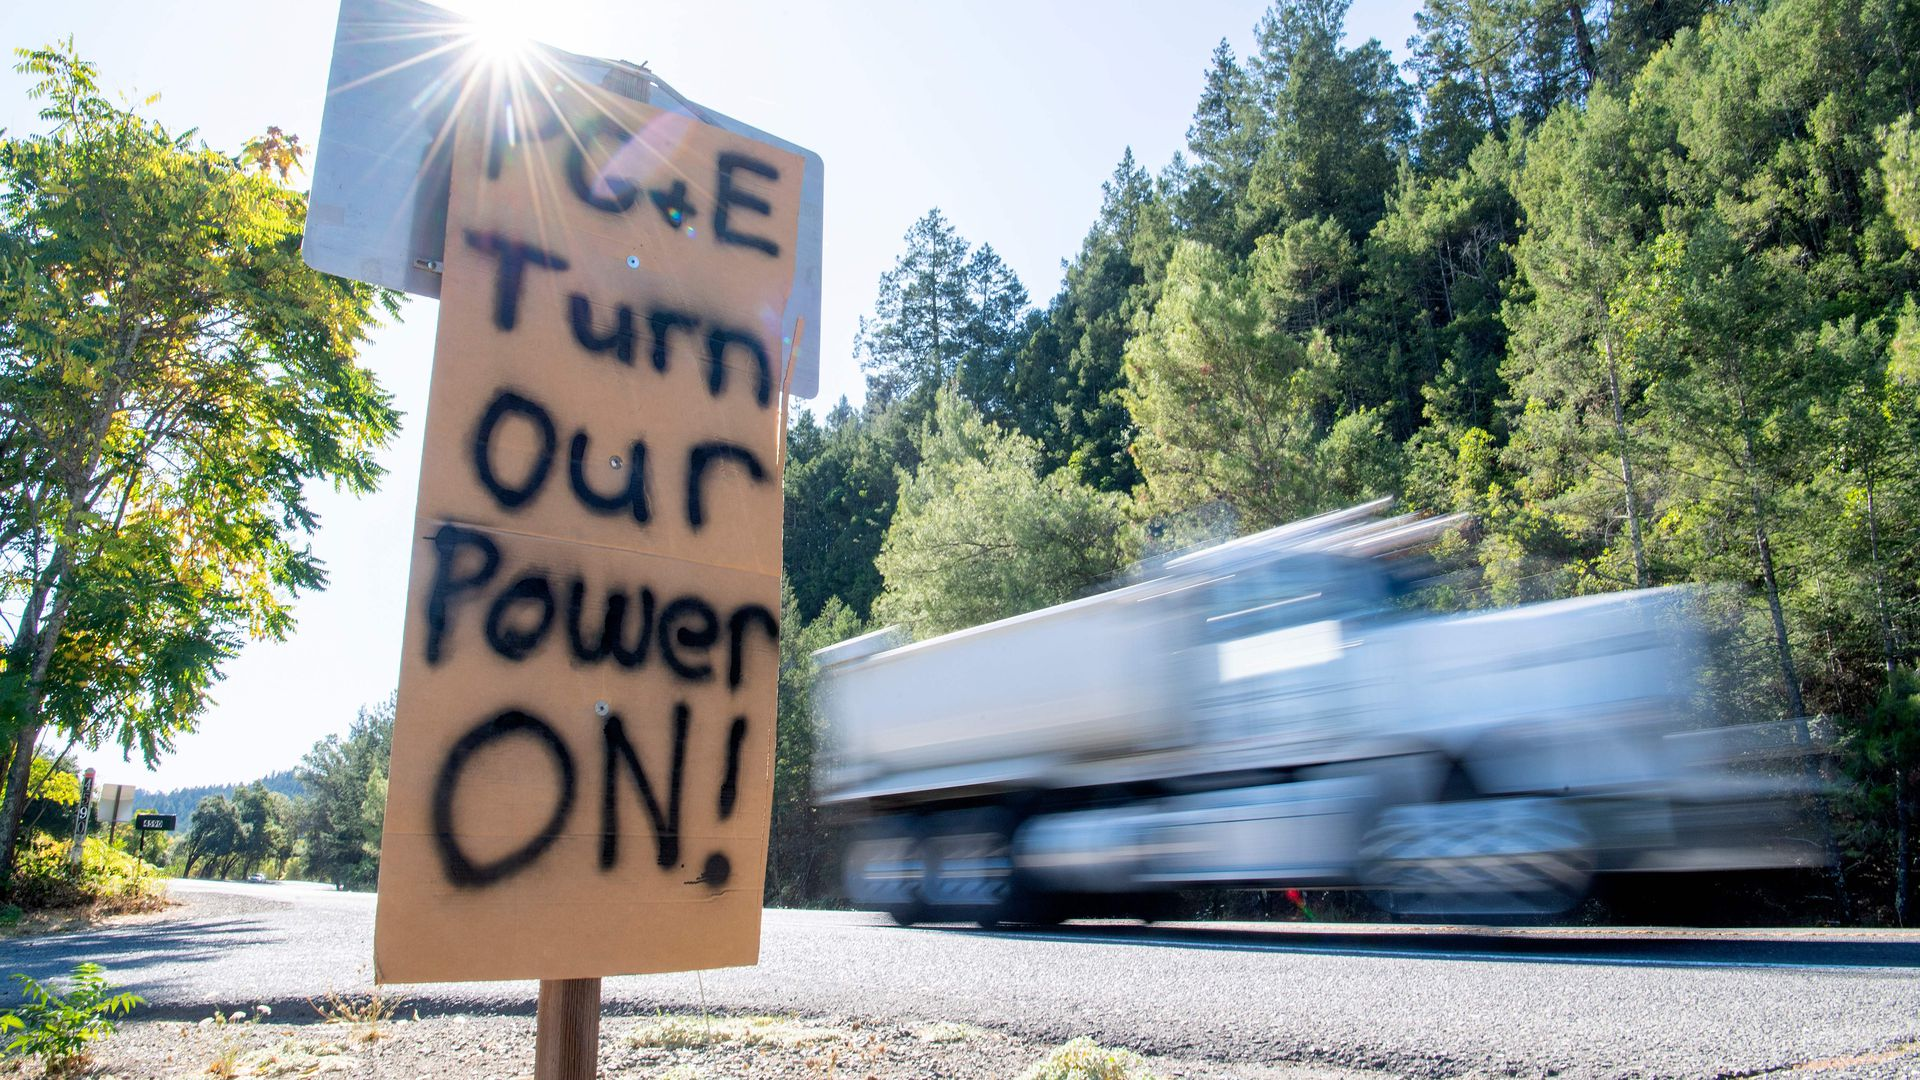 A sign calling PG&E to turn the power back on.